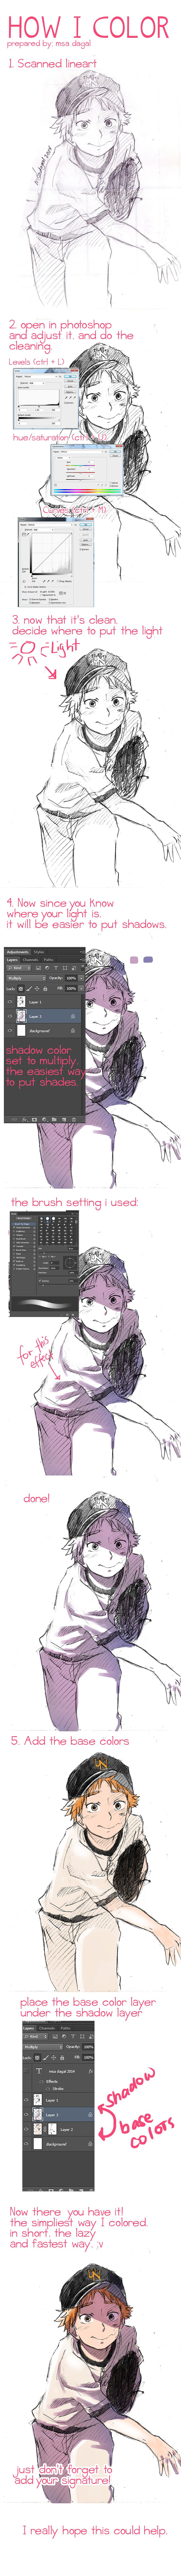 HOW I COLOR THE SIMPLE WAY by msadagal on deviantART